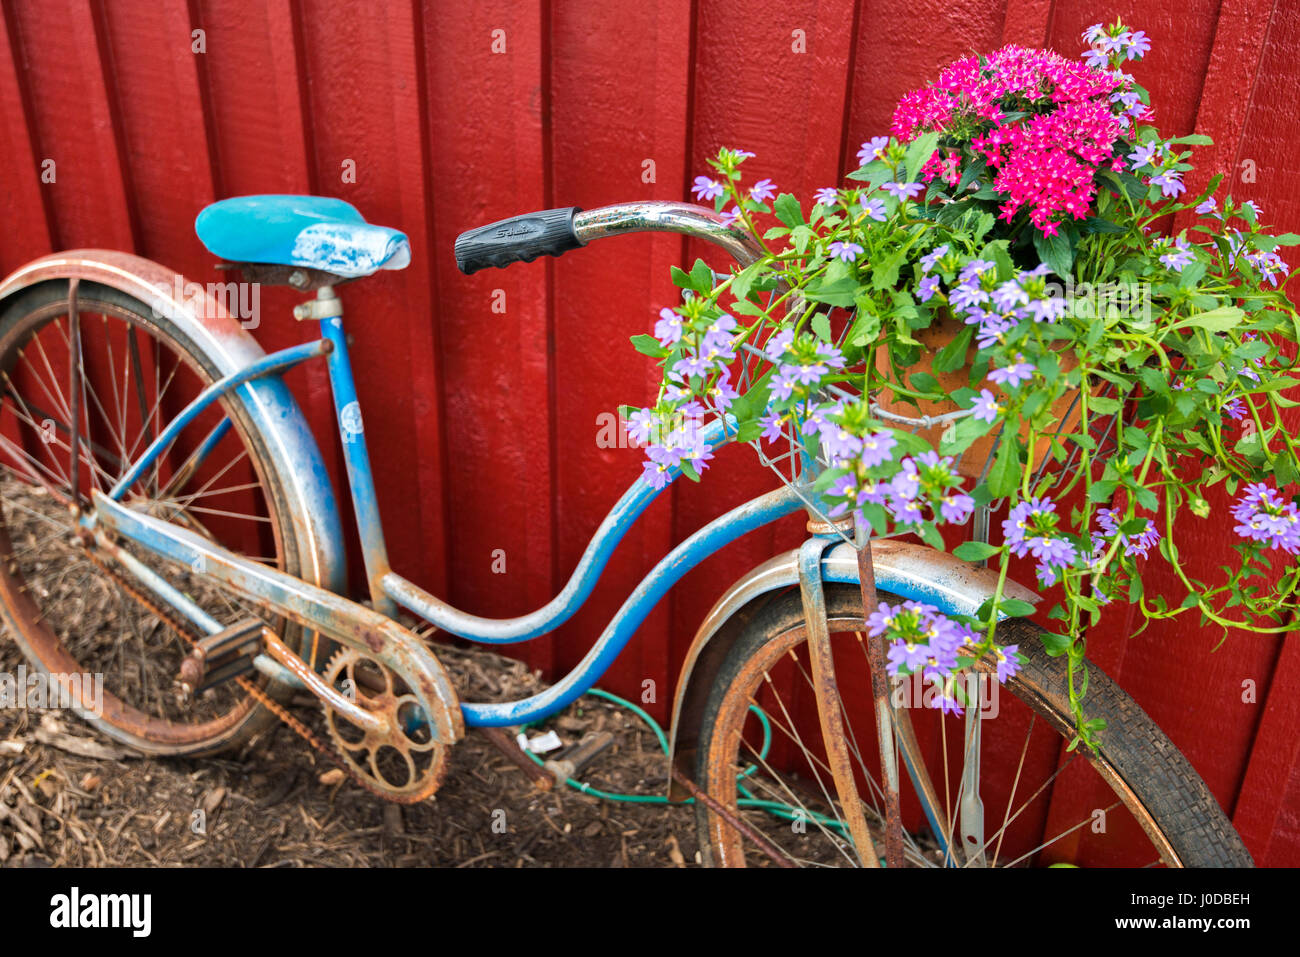 Flowers in a basket on an old vintage blue bicycle against red barn backdrop. Stock Photo